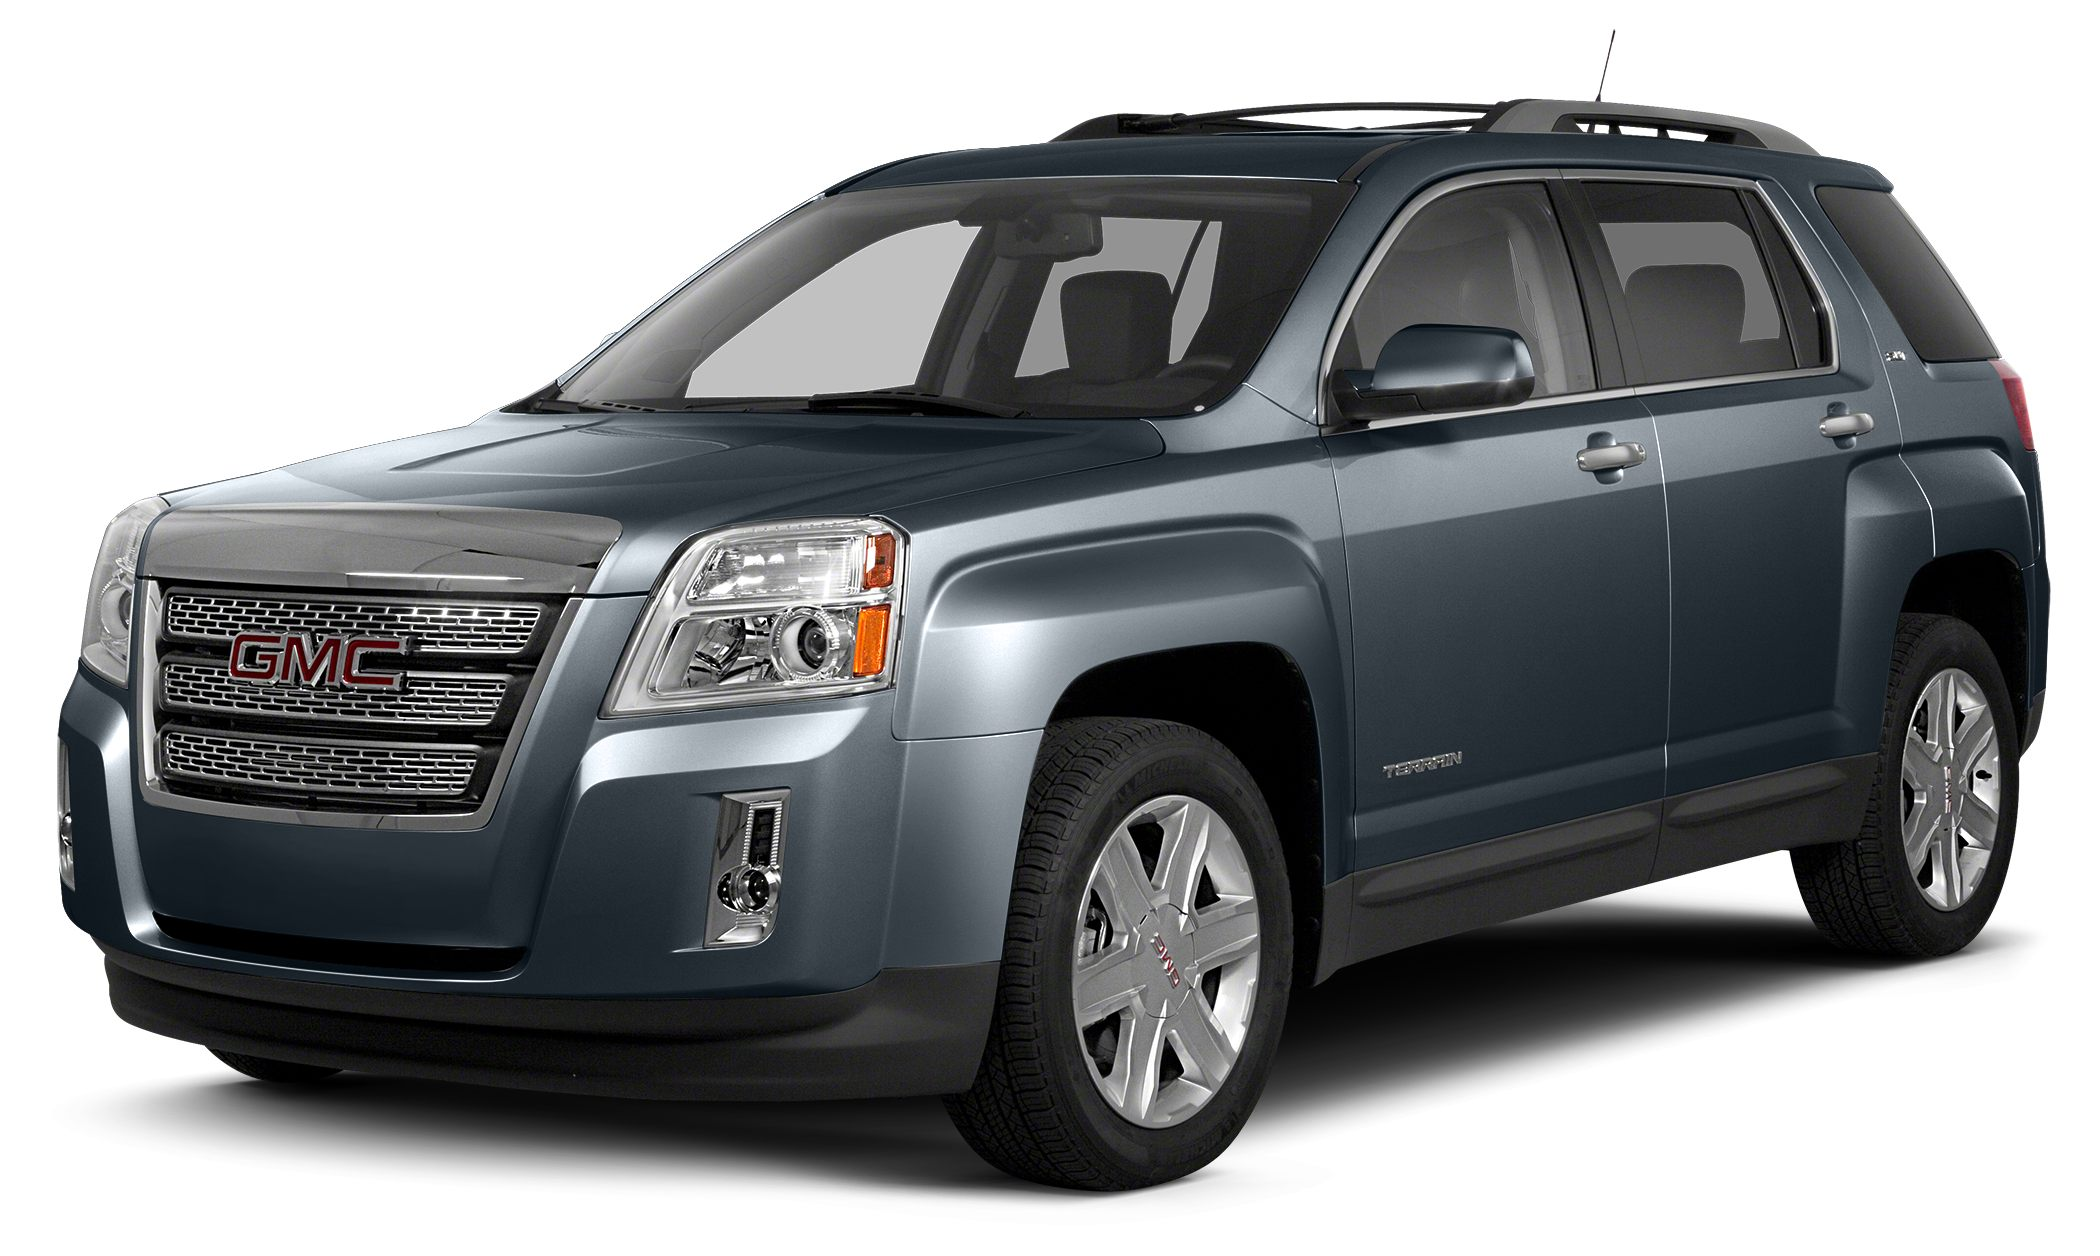 2013 GMC Terrain SLE-1 Excellent Condition LOW MILES - 27448 EPA 29 MPG Hwy20 MPG City SLE tr